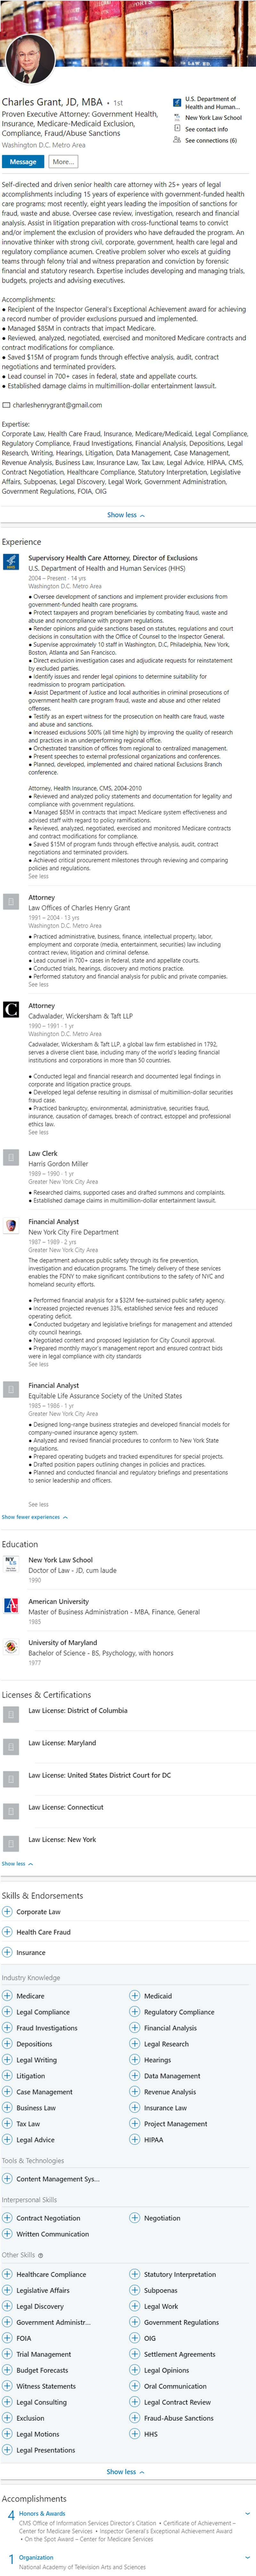 HHS federal government LinkedIn Profile Example 2309